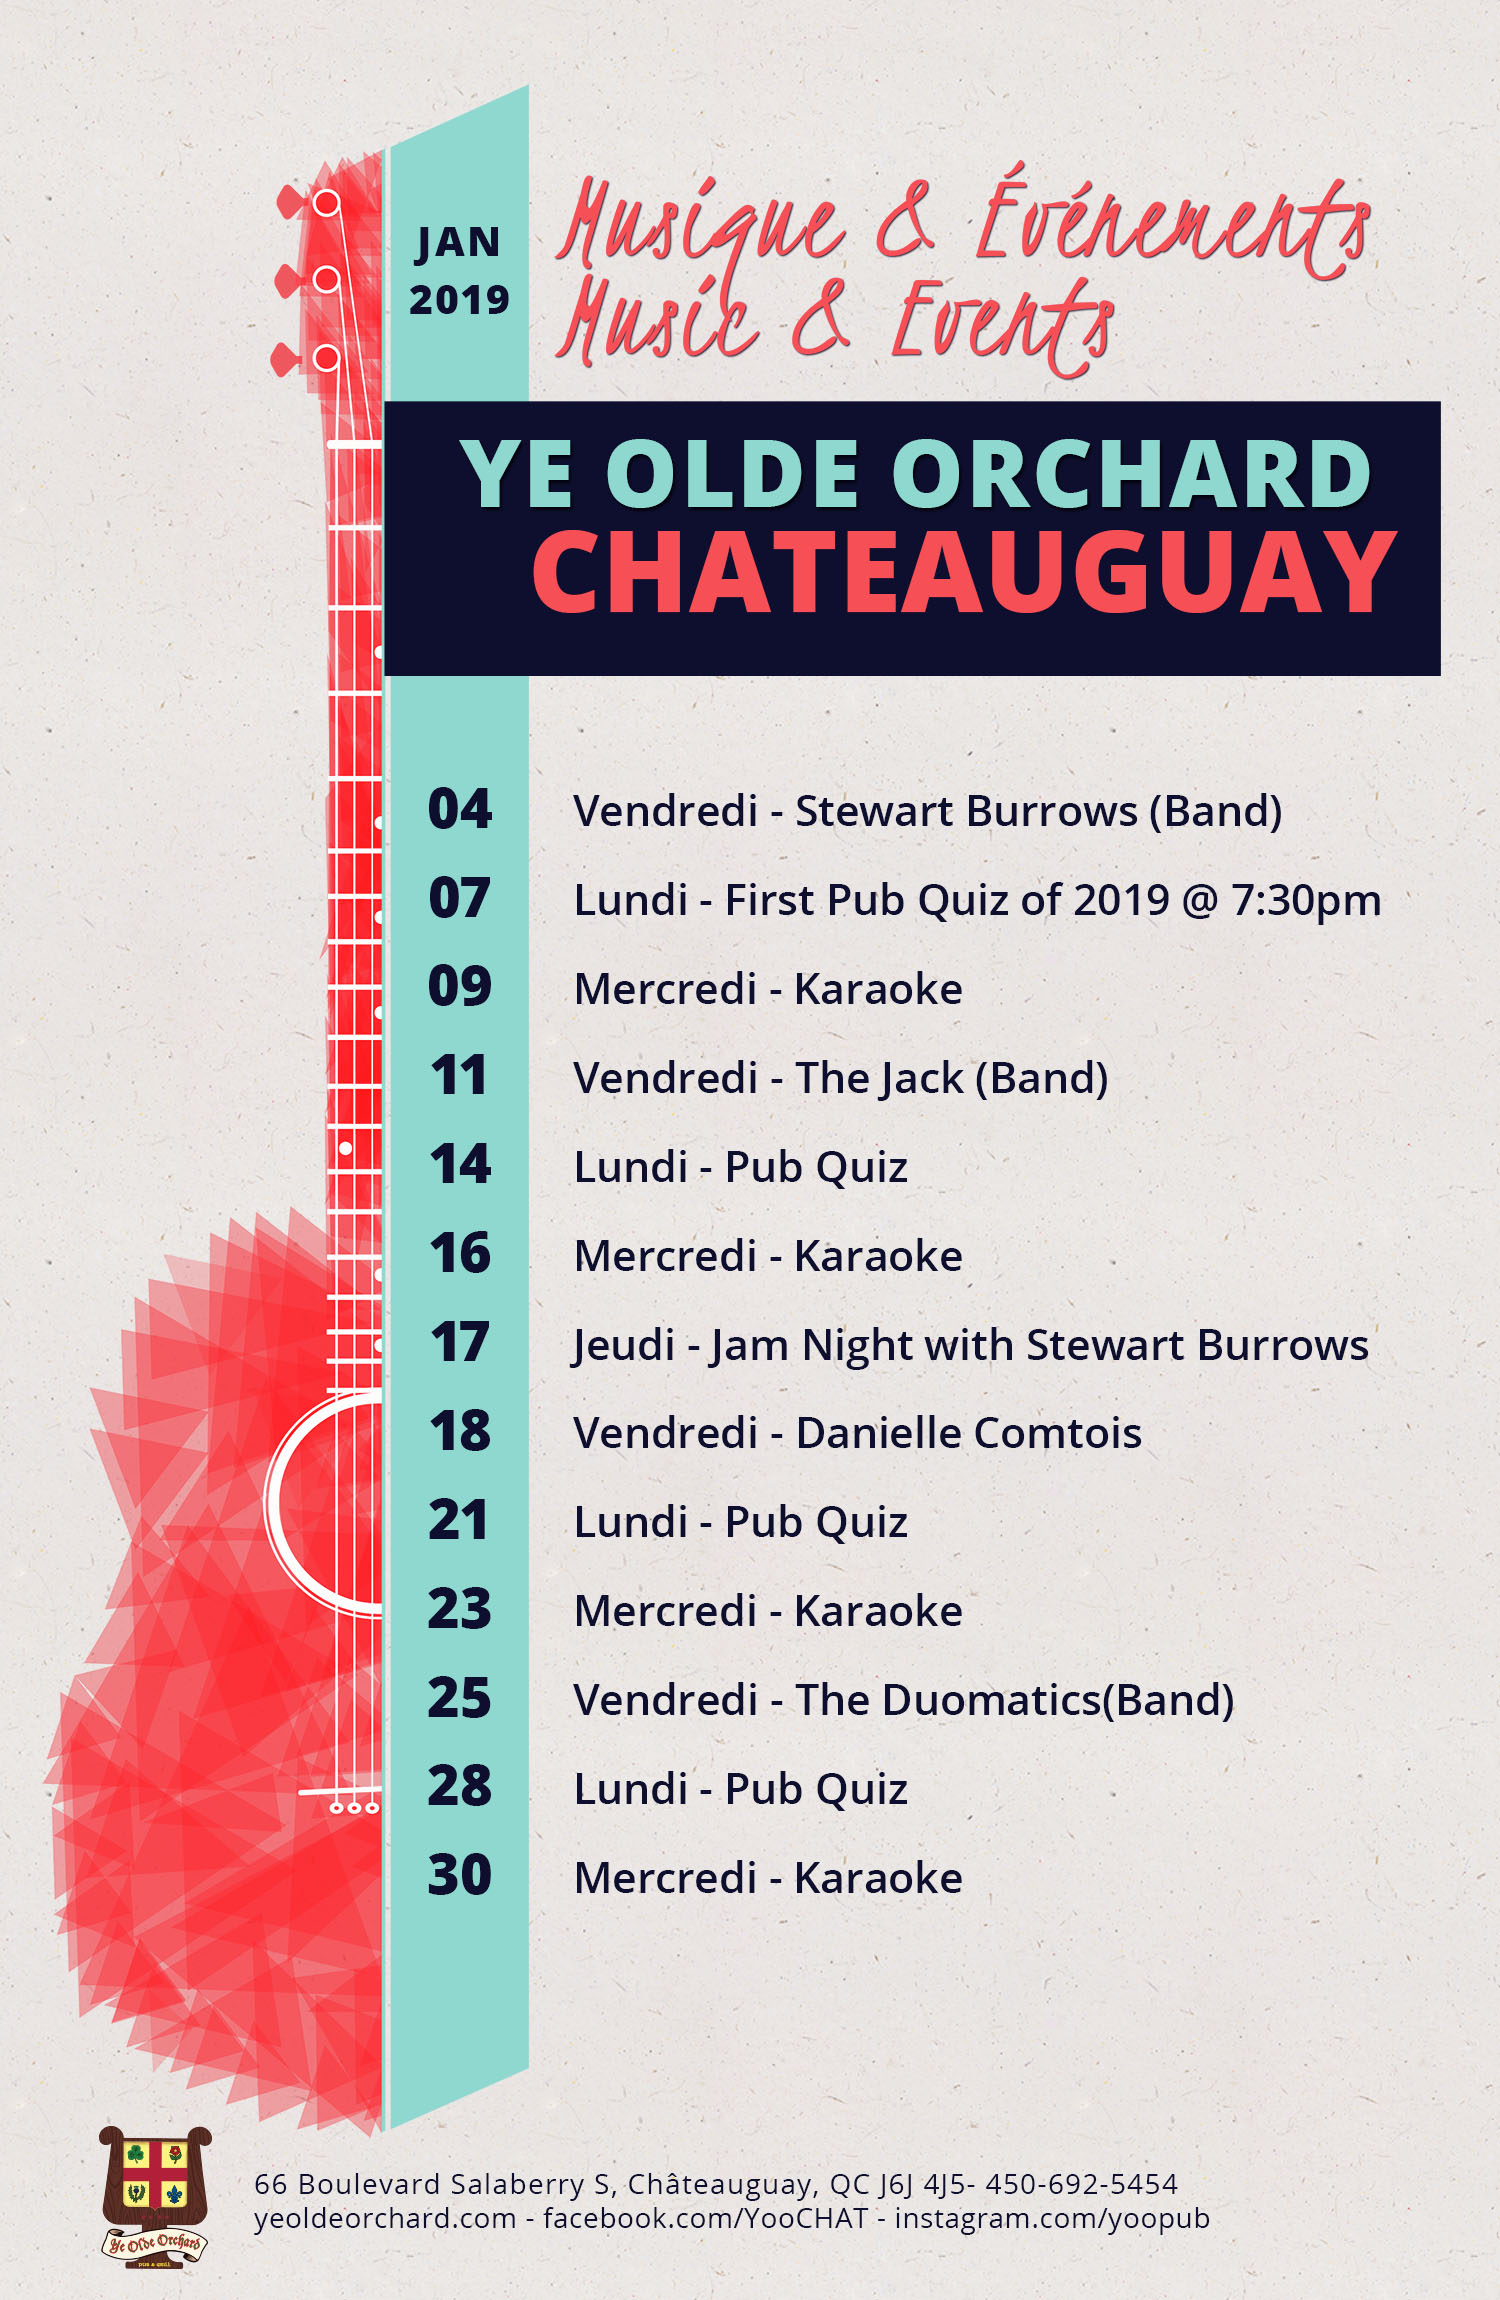 ye-olde-orchard-pub-music-and-events-calendar-chat